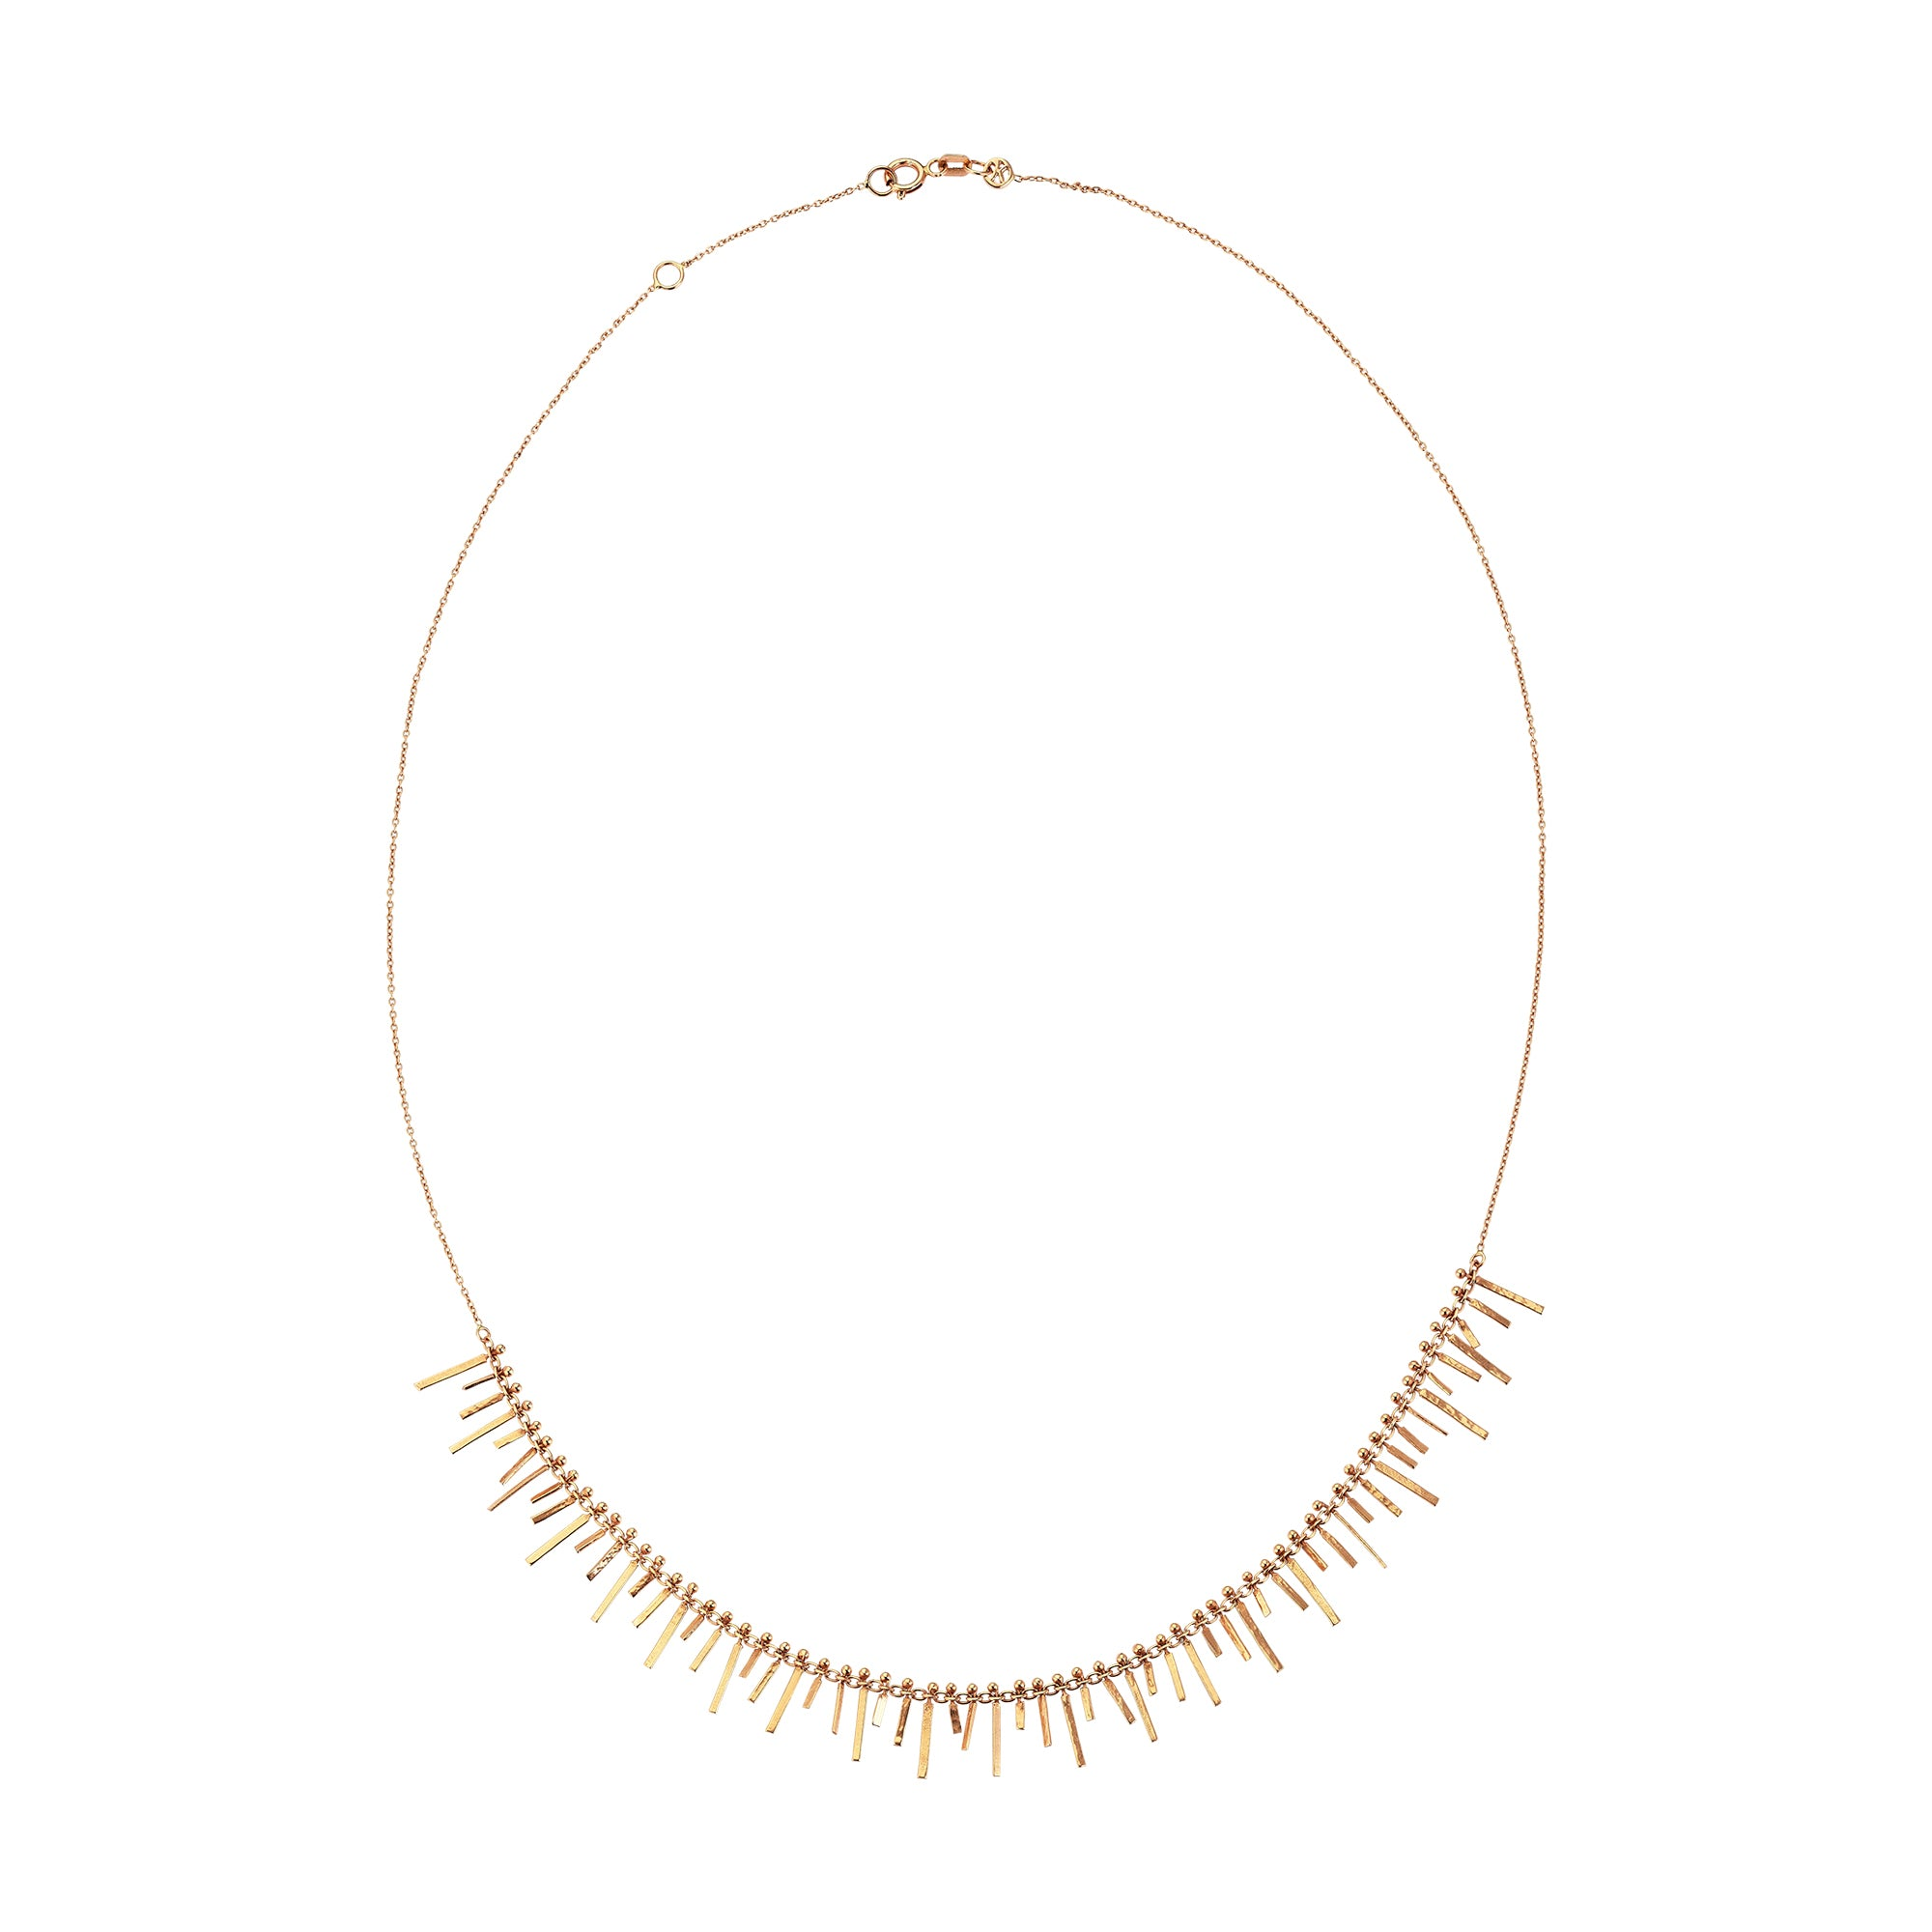 Tassel Necklace by Kismet for Broken English Jewelry